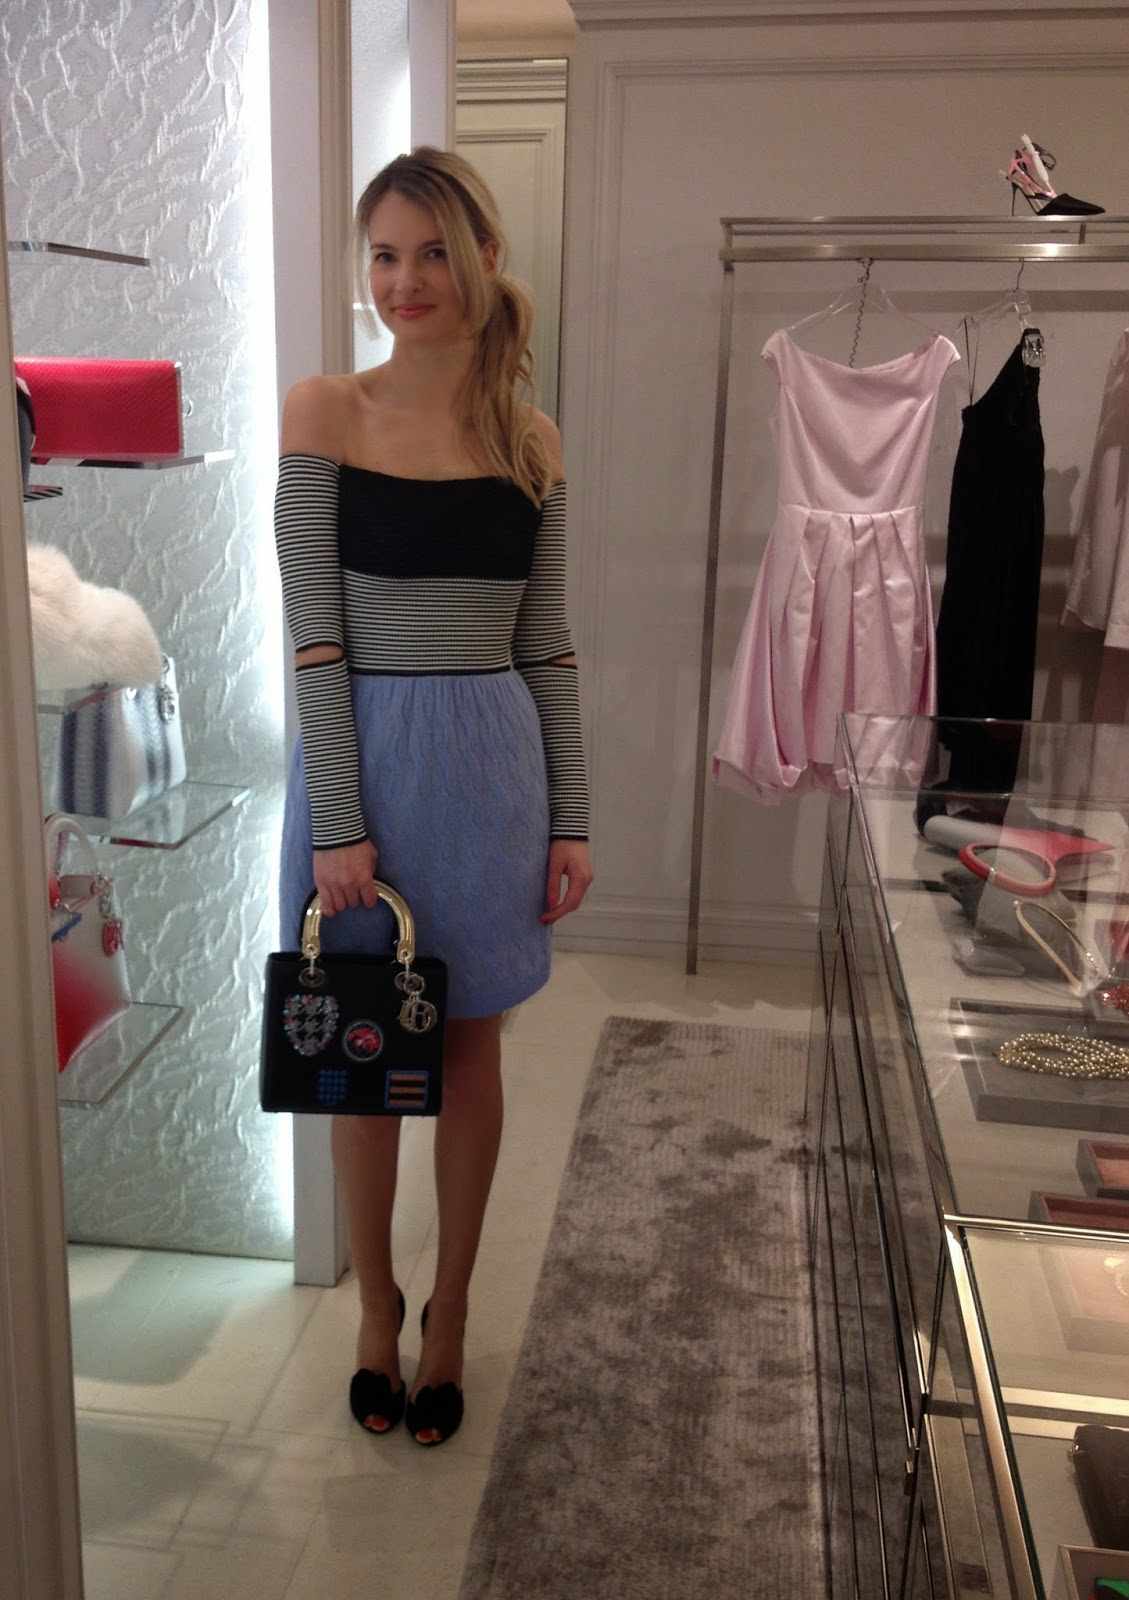 lady dior, lady dior bag, lady dior bag with patches, dior dress, off the shoulder dior dress, dior ready to wear, dior spring summer 2014, knitted skirt, volume skirt, baby blue skirt, striped dress, harrods, chrissabella